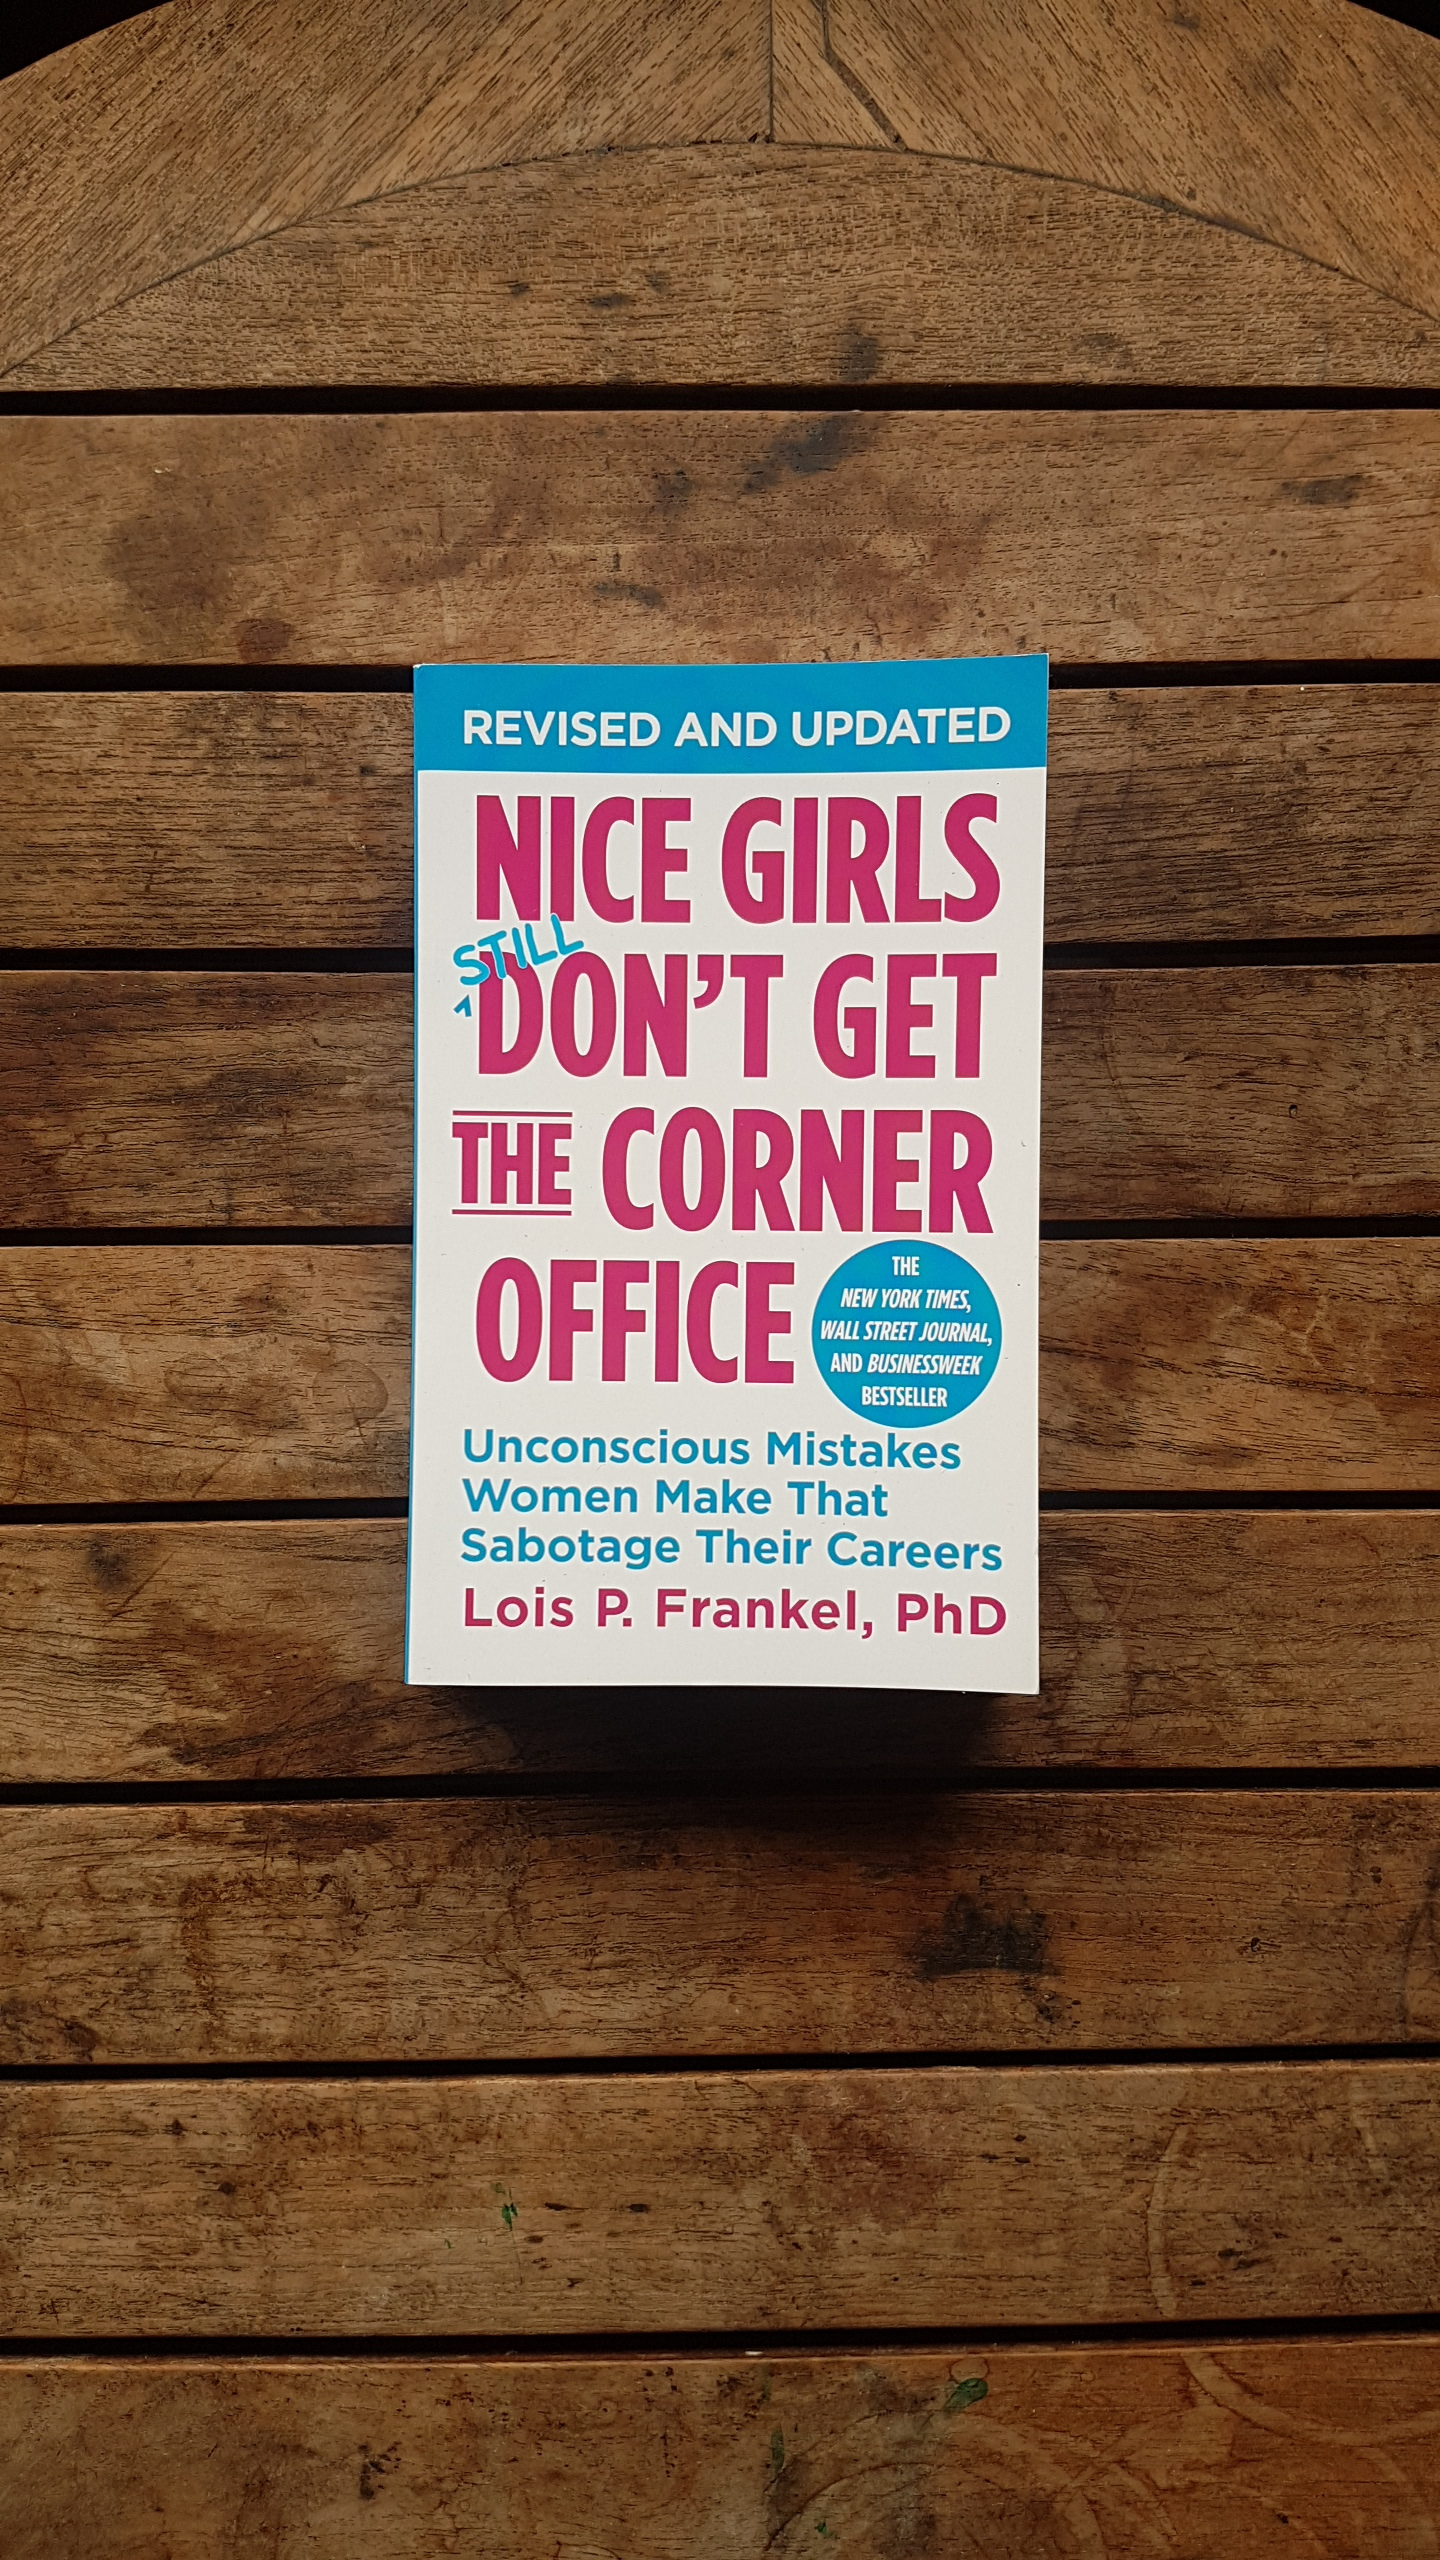 Nice Girls Don't Get the Corner Office: Unconscious Mistakes Women Make That Sabotage Their Careers   by Lois. P Frankel